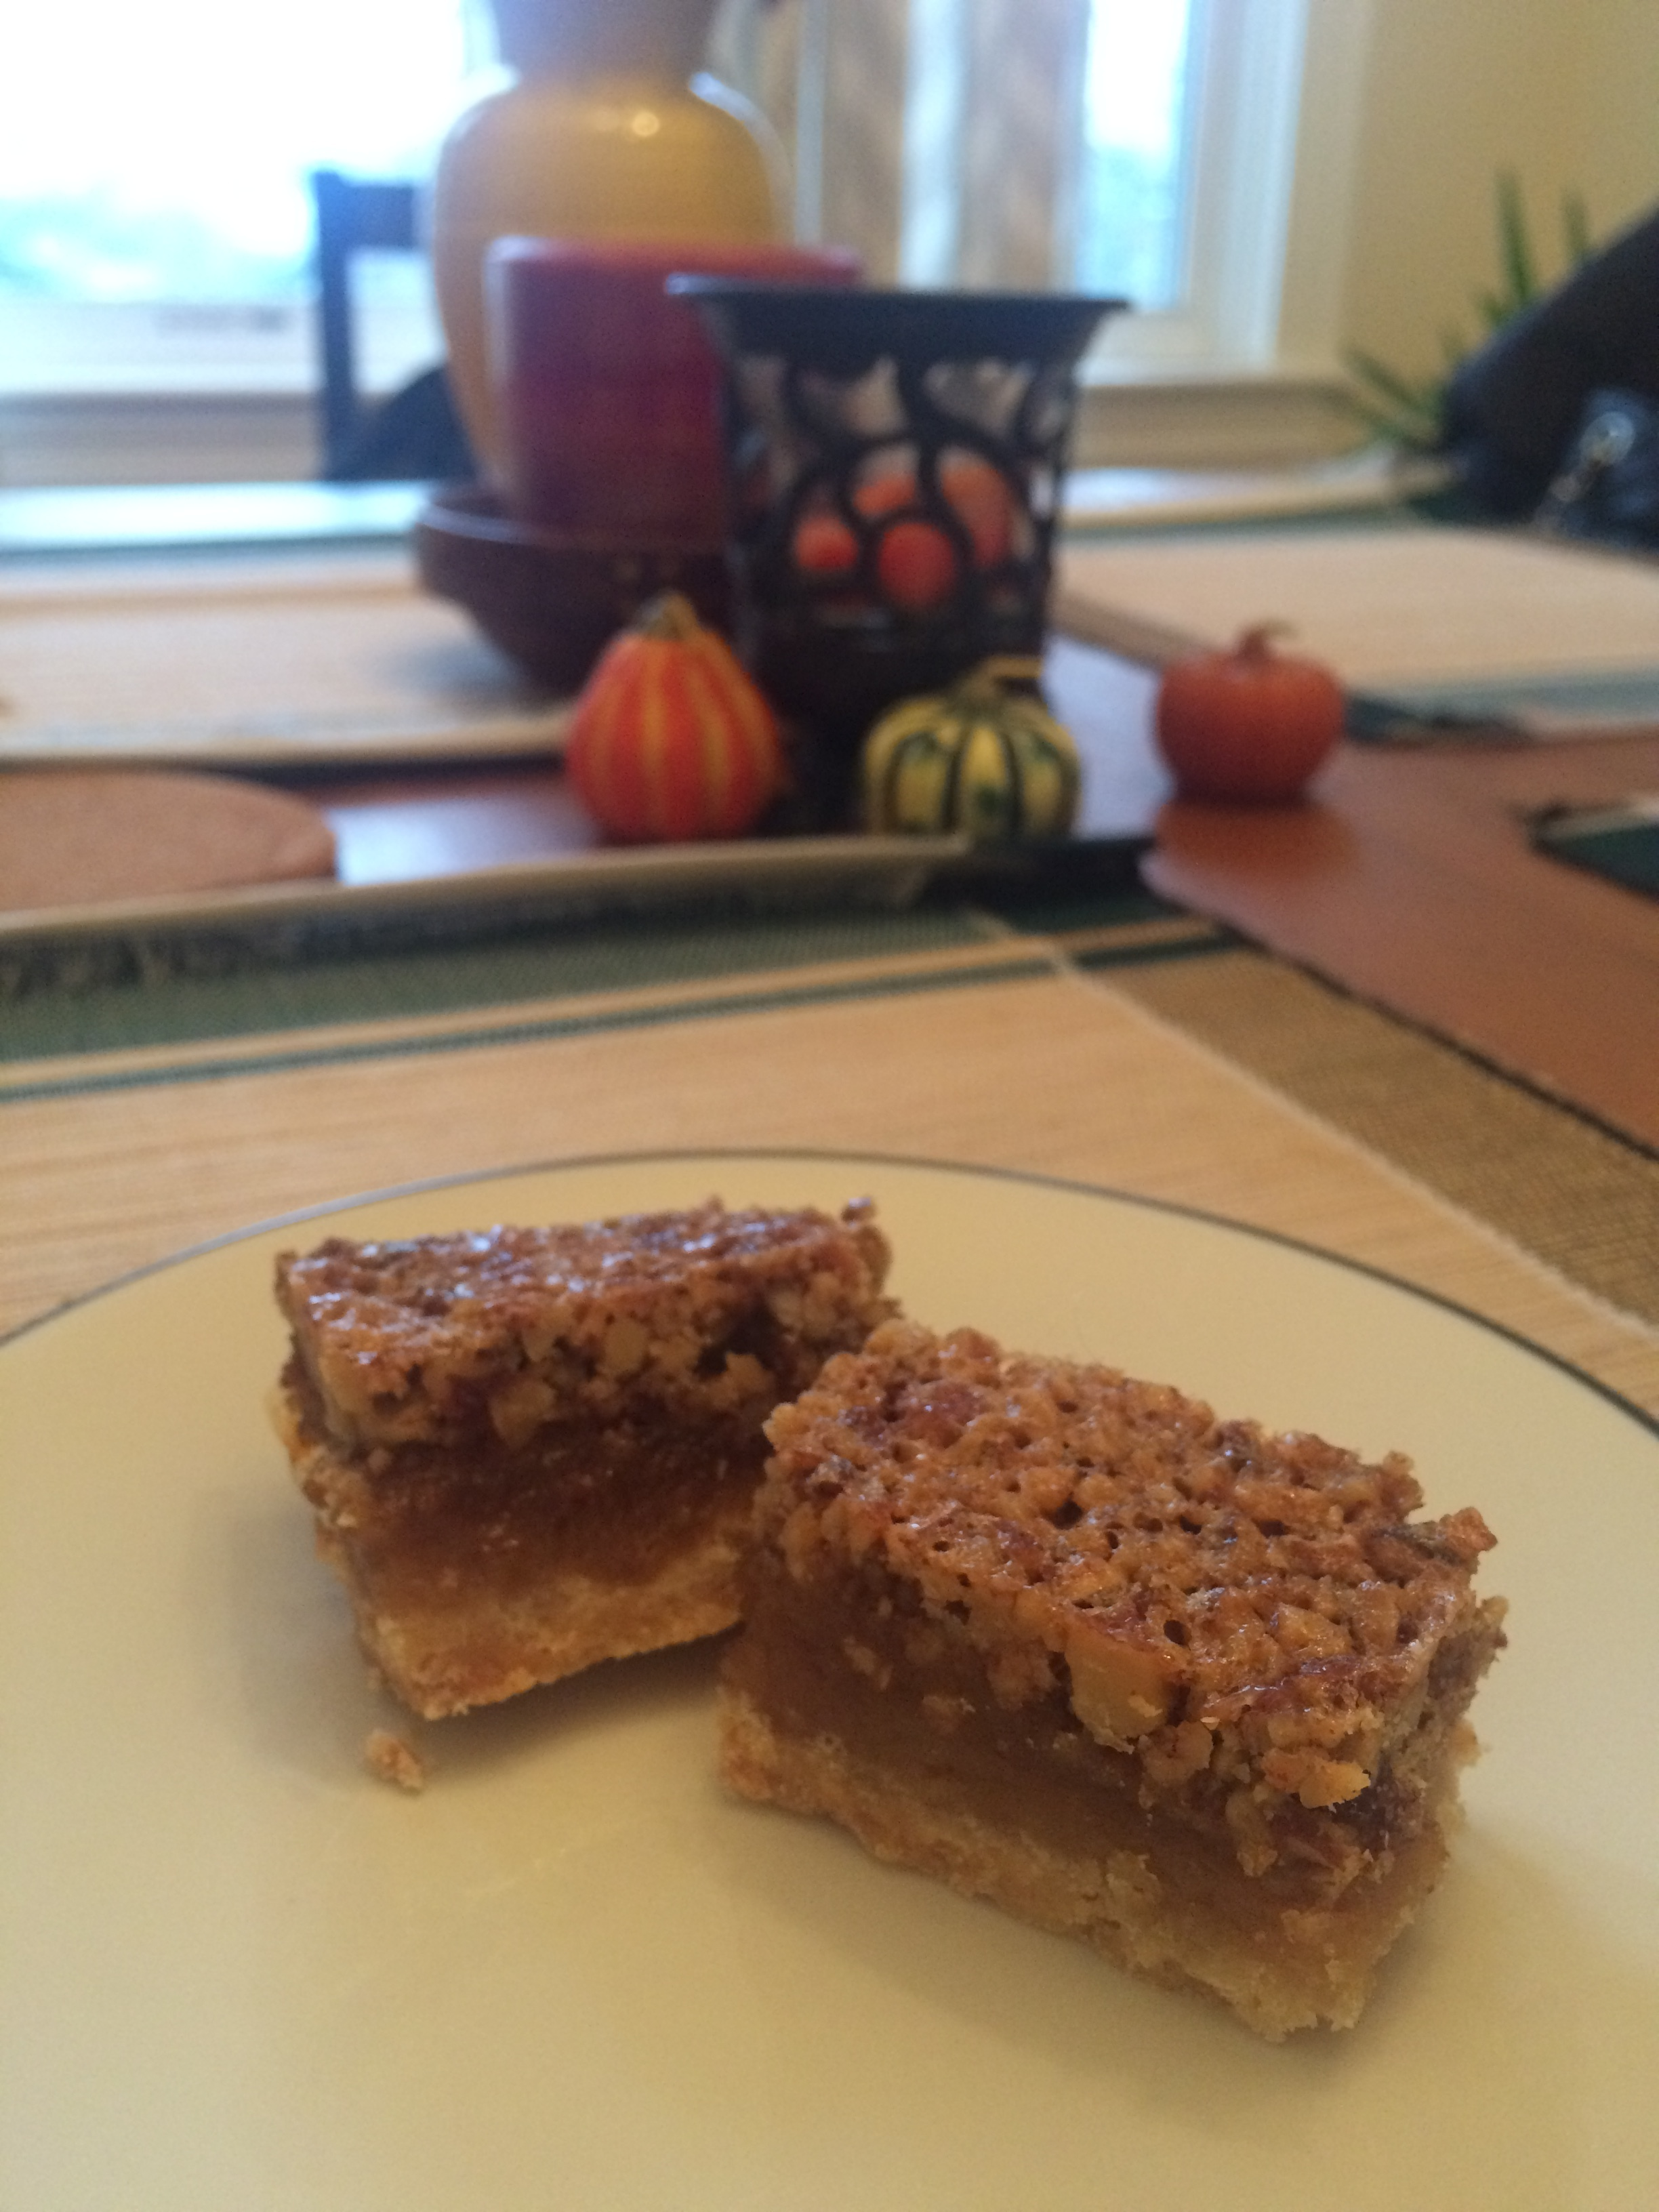 The finished product: Pecan Pie Bars!